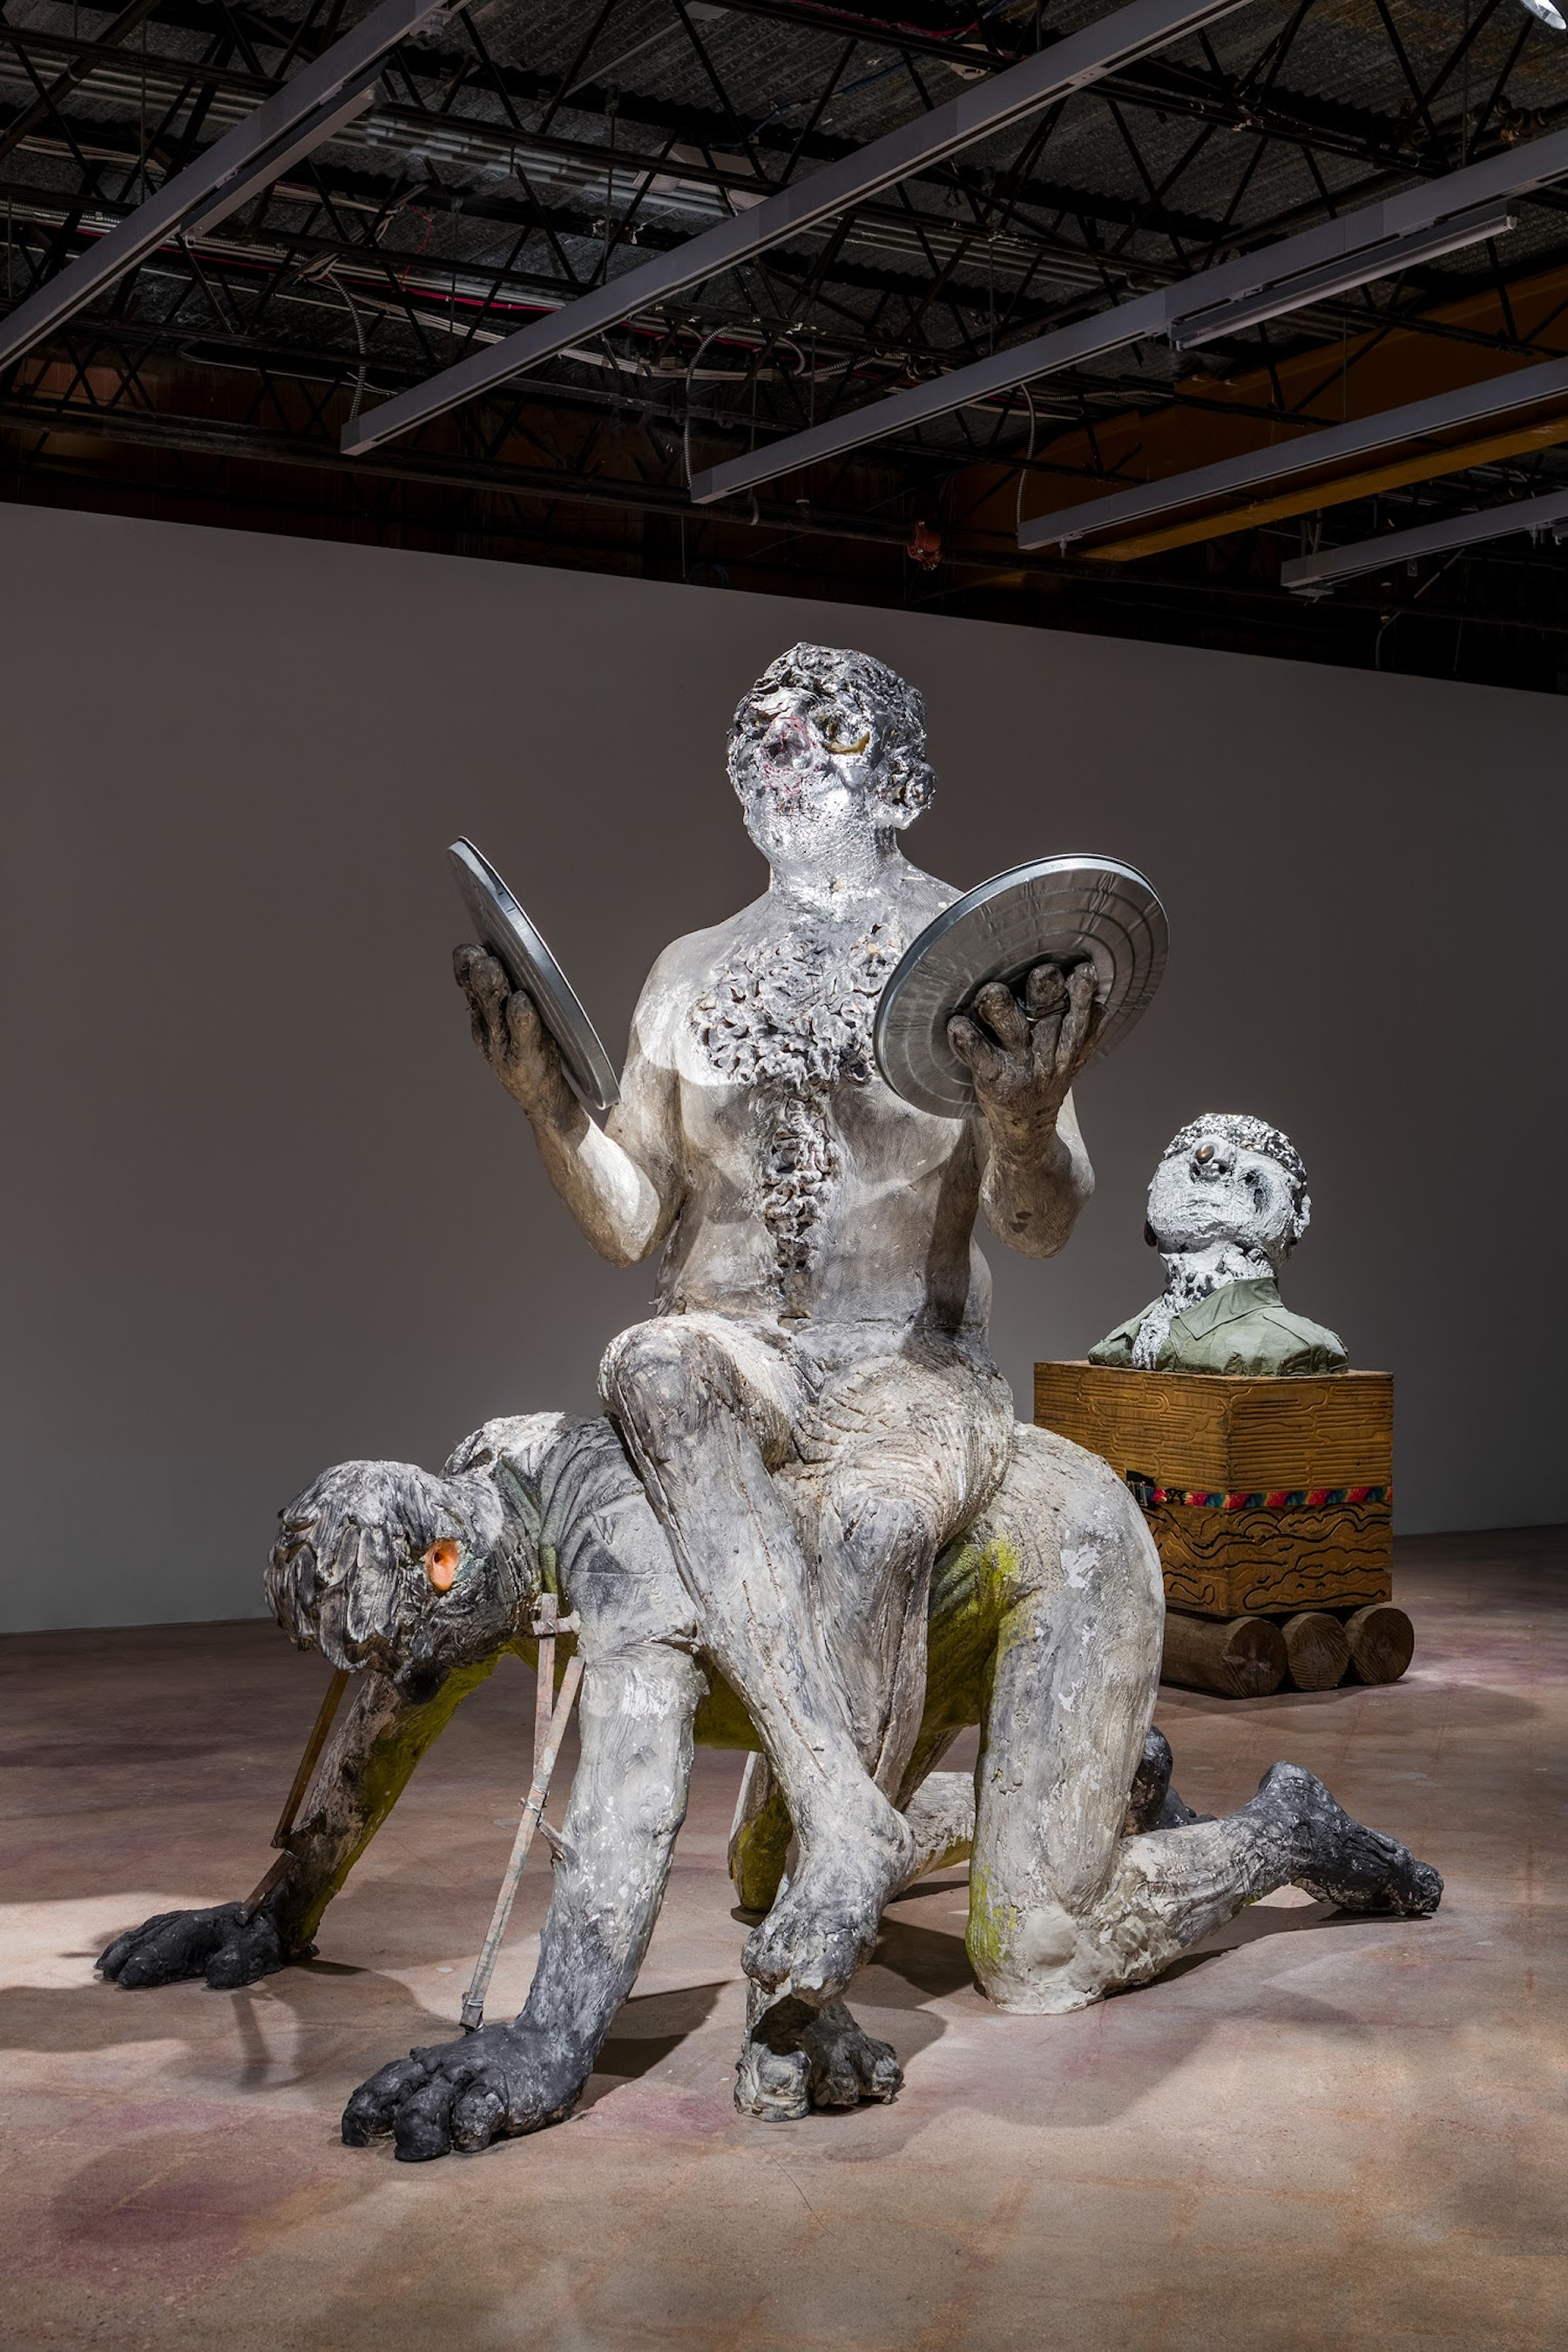 "Nicole Eisenman """"Man at the Center of Men,"" plaster version,"" 2019 Plaster, foam, fiberglass, epoxy resin, graphite, trashcan lids, mirrors, silver leaf, wood, and paint 97 x 100 x 64"" [HxWxD] (246.38 x 254 x 162.56 cm) Approx. Inventory #EIS549 Courtesy of the artist and Vielmetter Los Angeles"